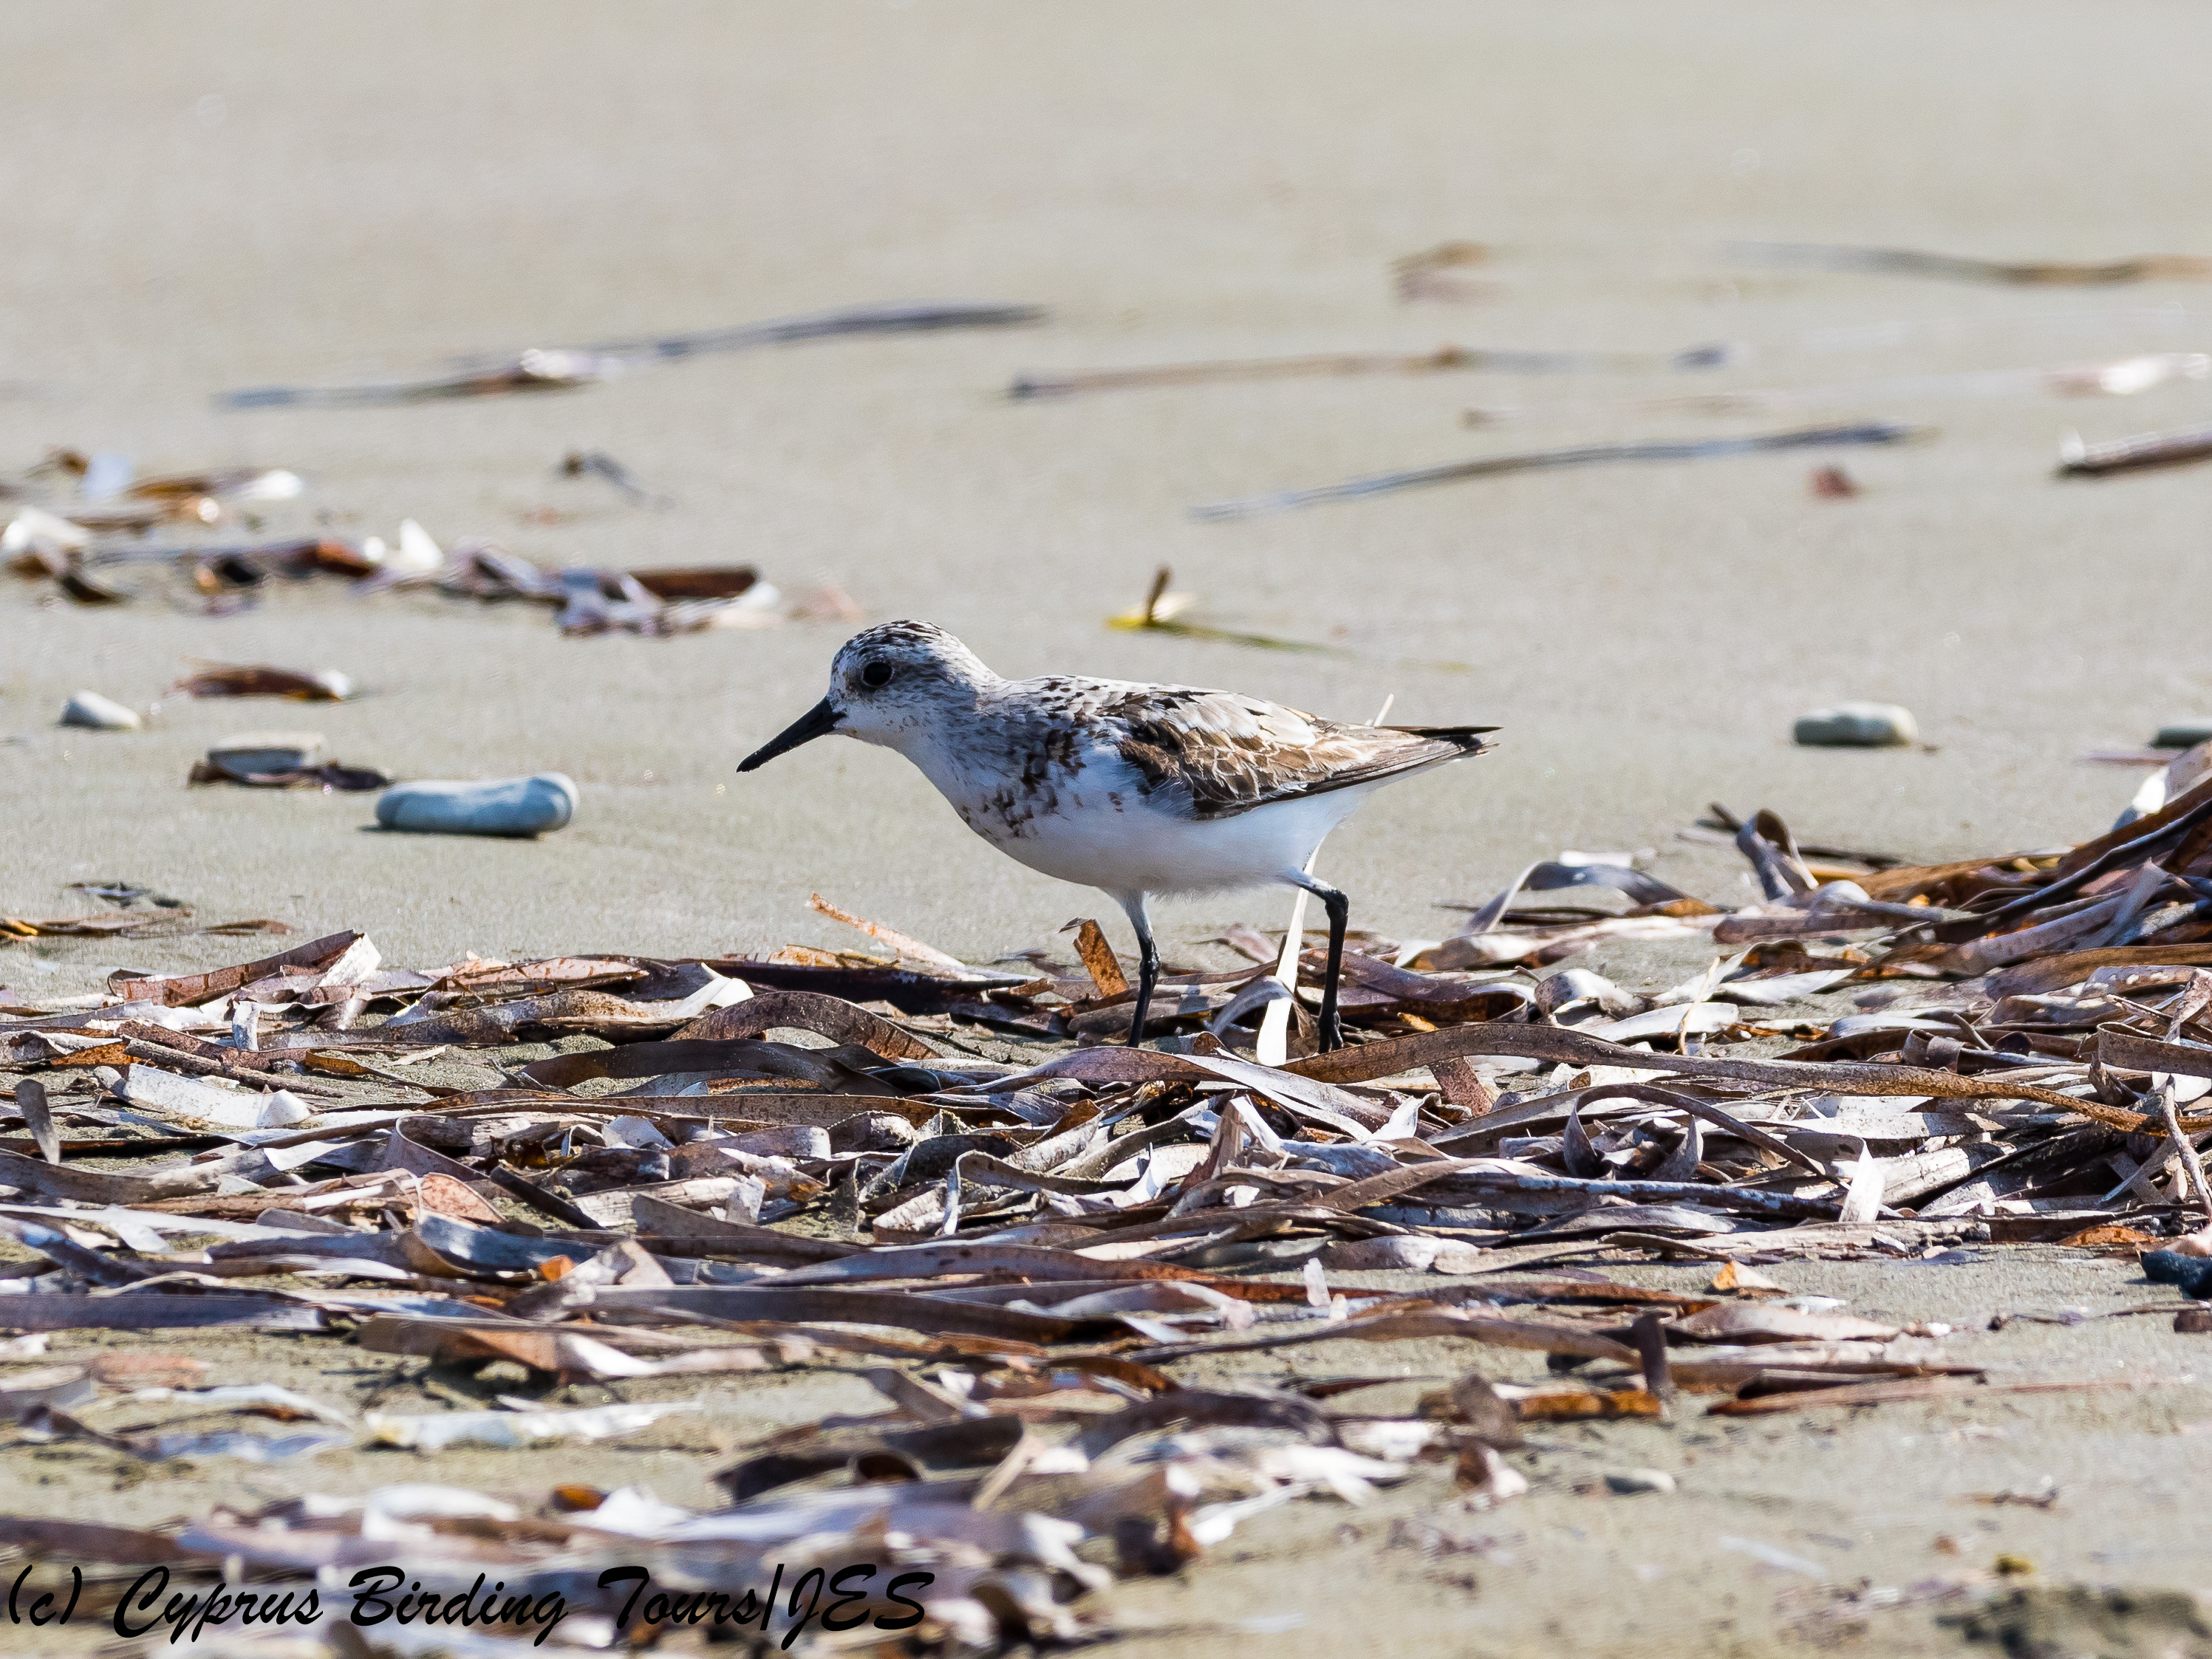 Sanderling, Larnaca 15th September 2017 (c) Cyprus Birding Tours